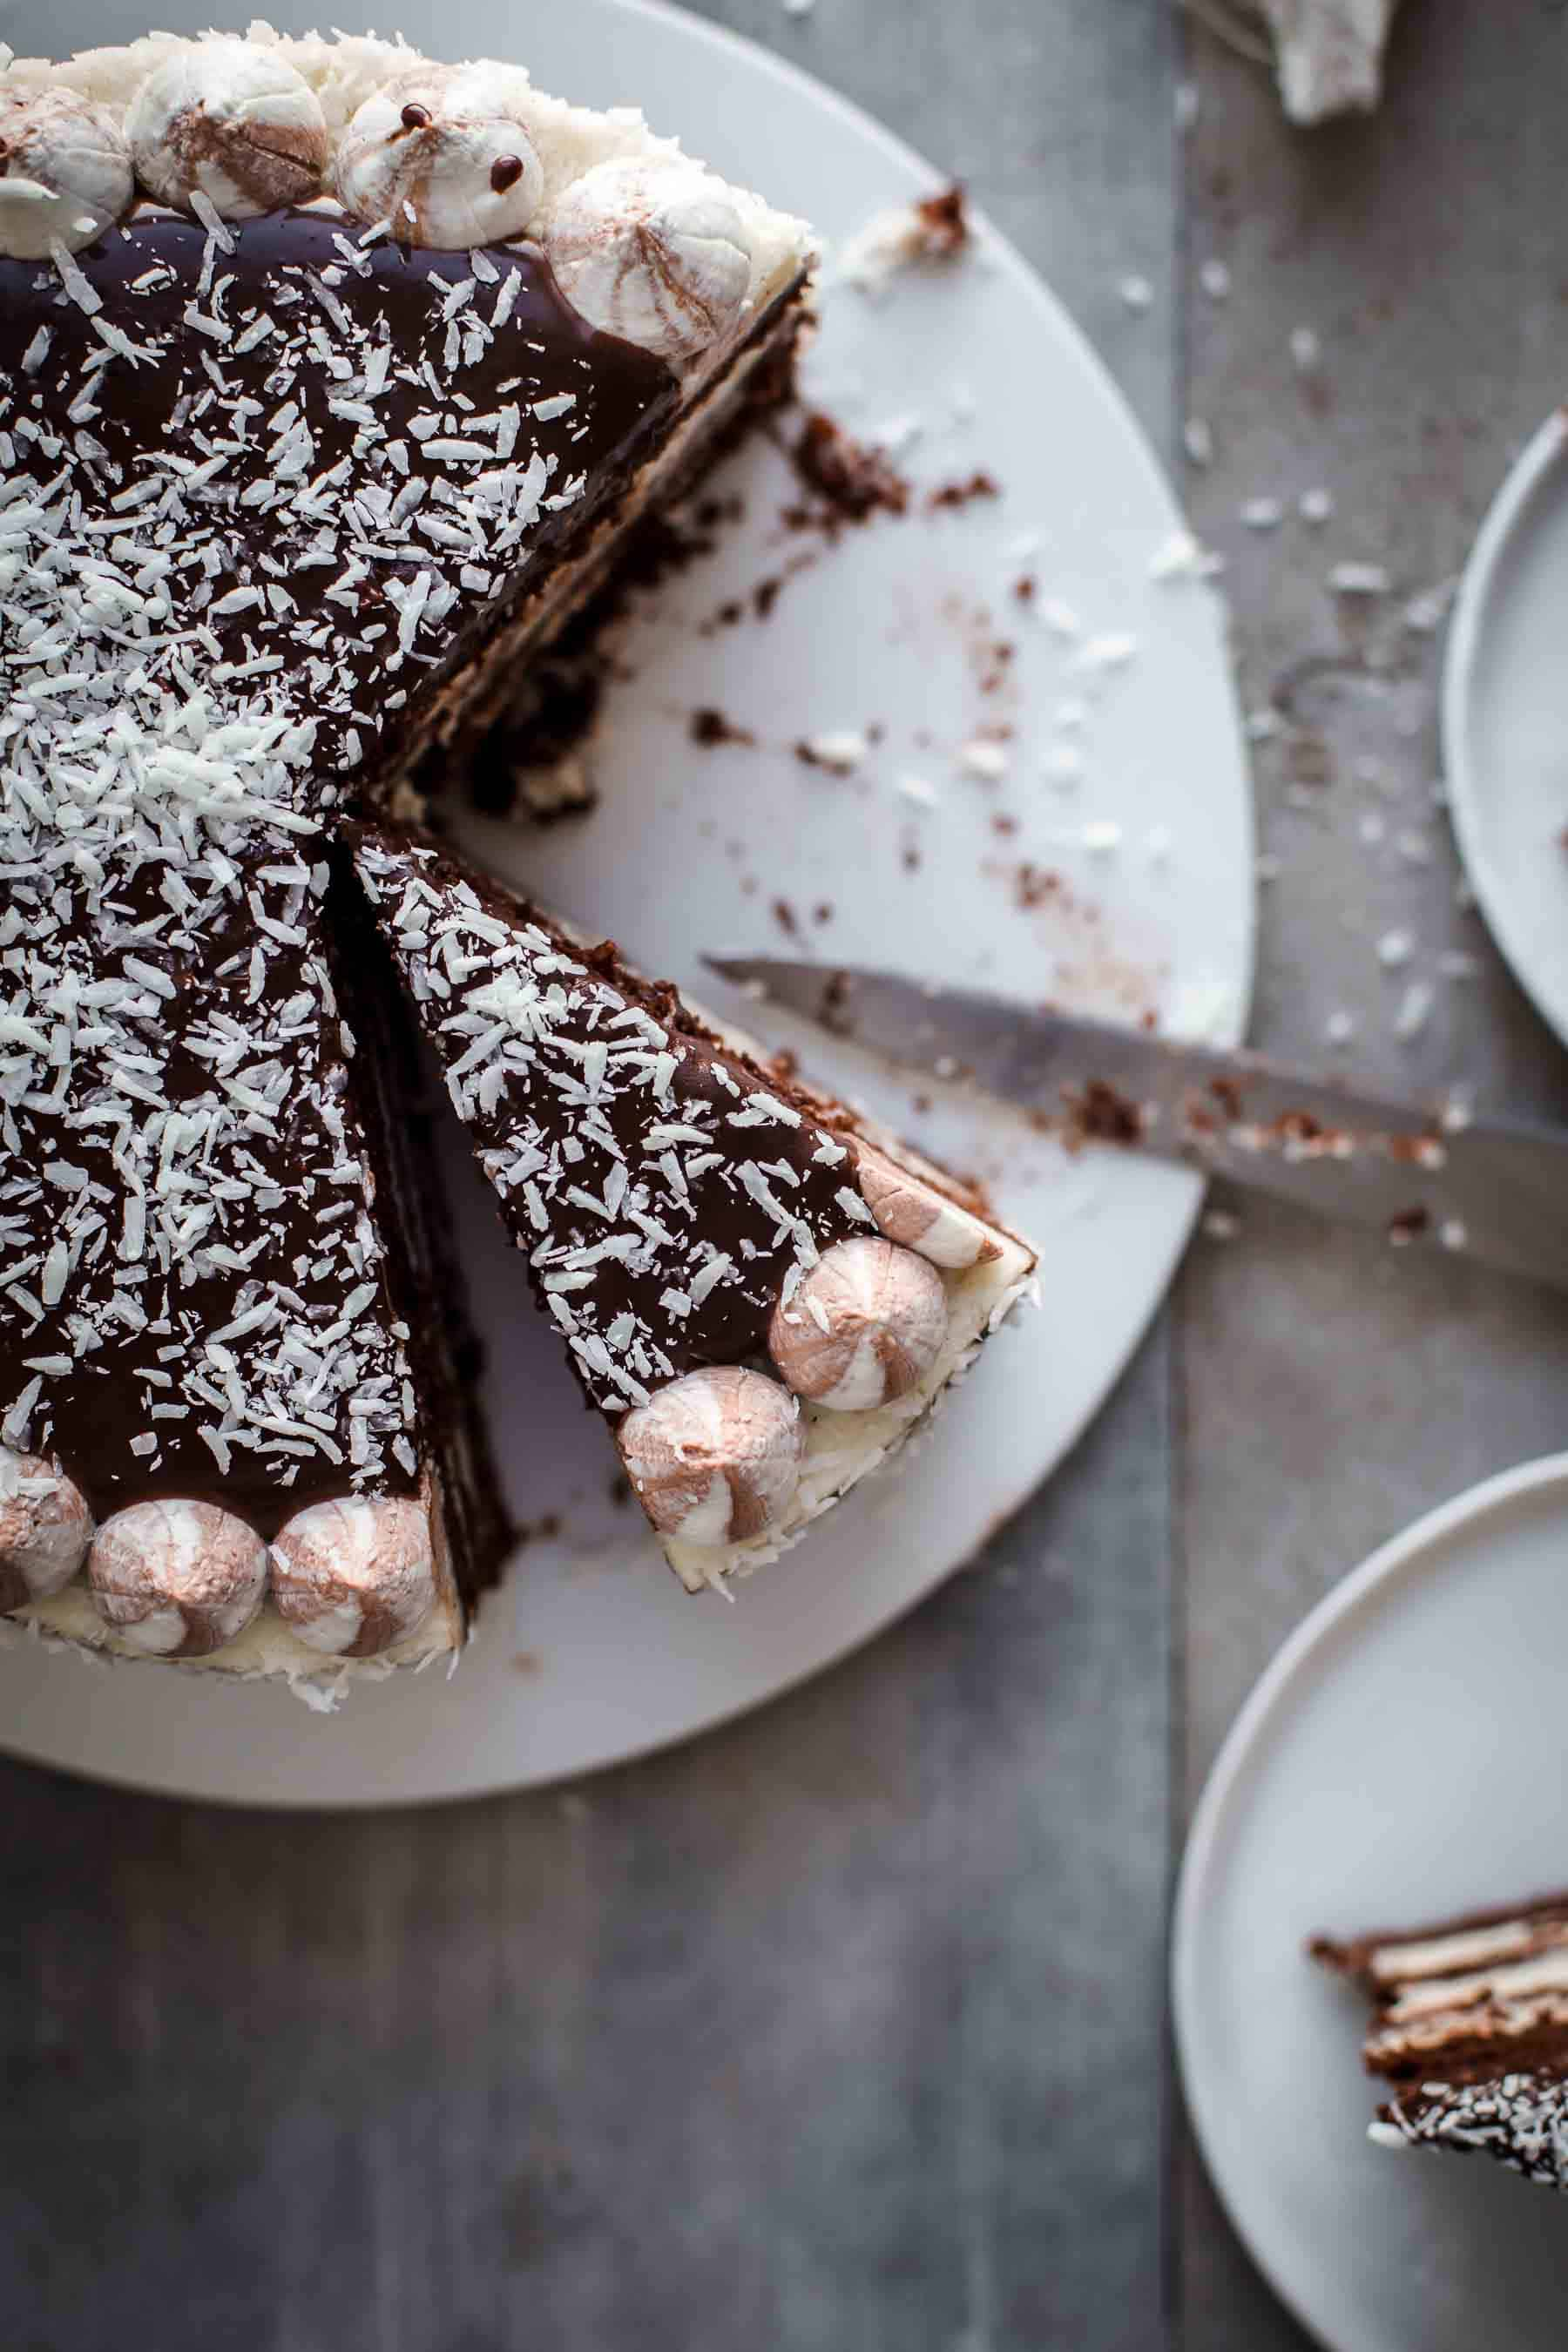 Cut Coconut Chocolate Cake top down on serving plate